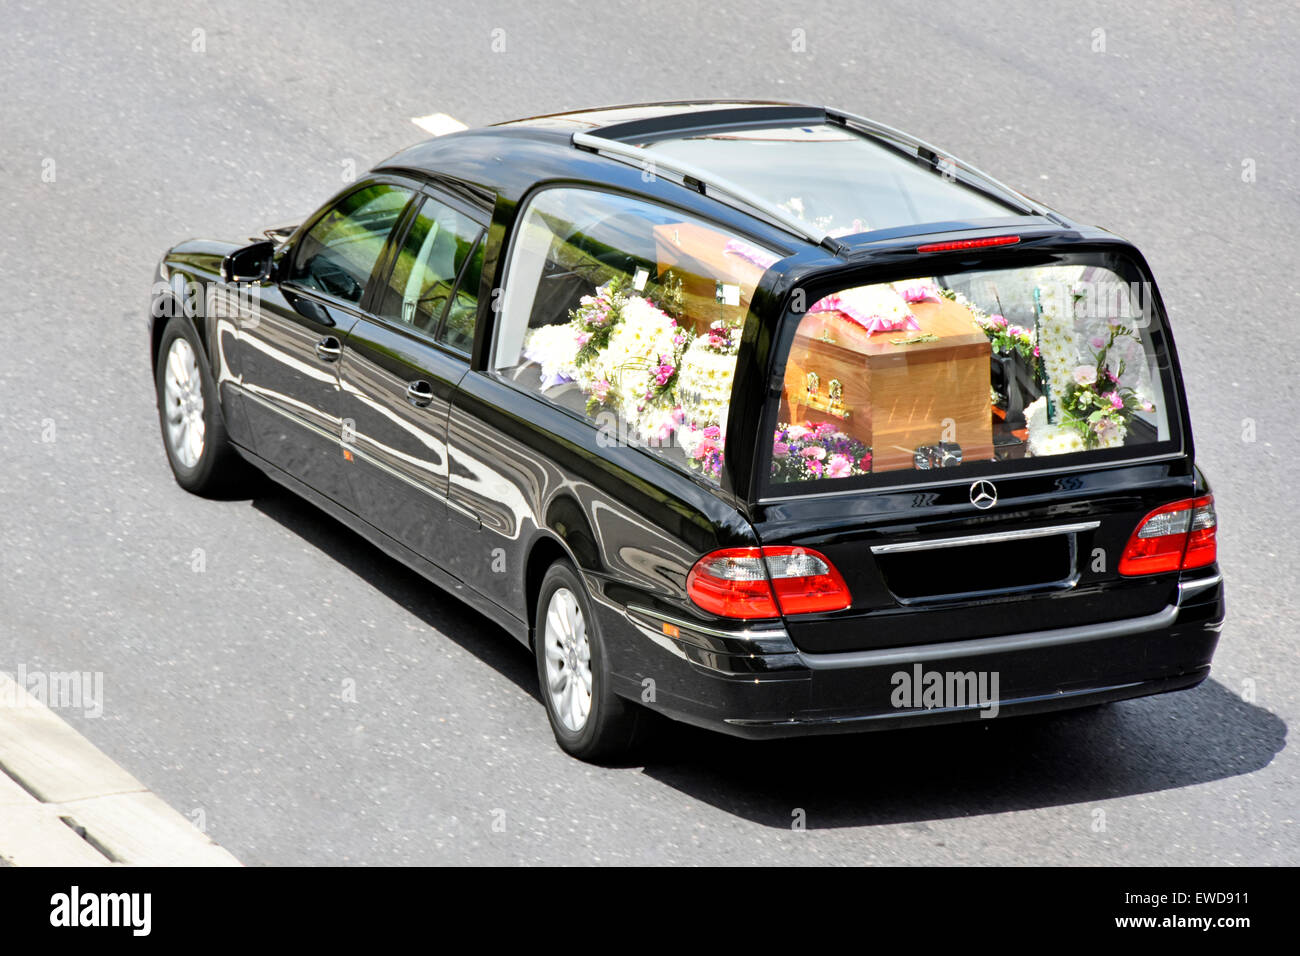 Coffin in funeral hearse floral tributes obscured numberplate with coffin in funeral hearse floral tributes obscured numberplate with one brass decoration removed view from above looking down from bridge england uk izmirmasajfo